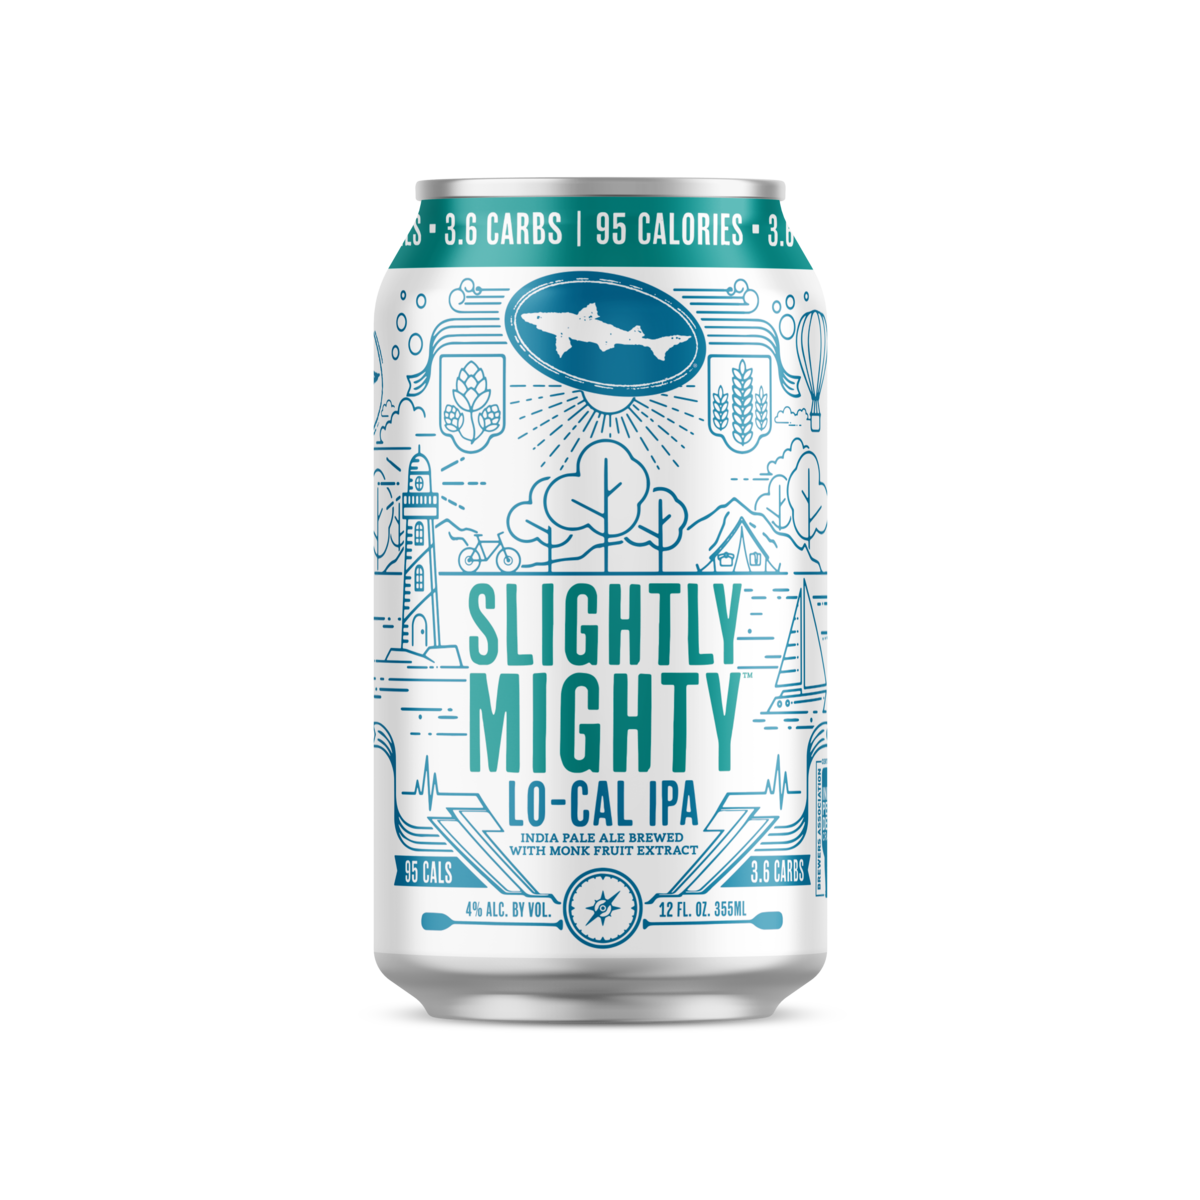 (6pk cans)-Dogfish Head Slightly Mighty Lo-Cal India Pale Ale Beer,  Delaware, USA (12oz)